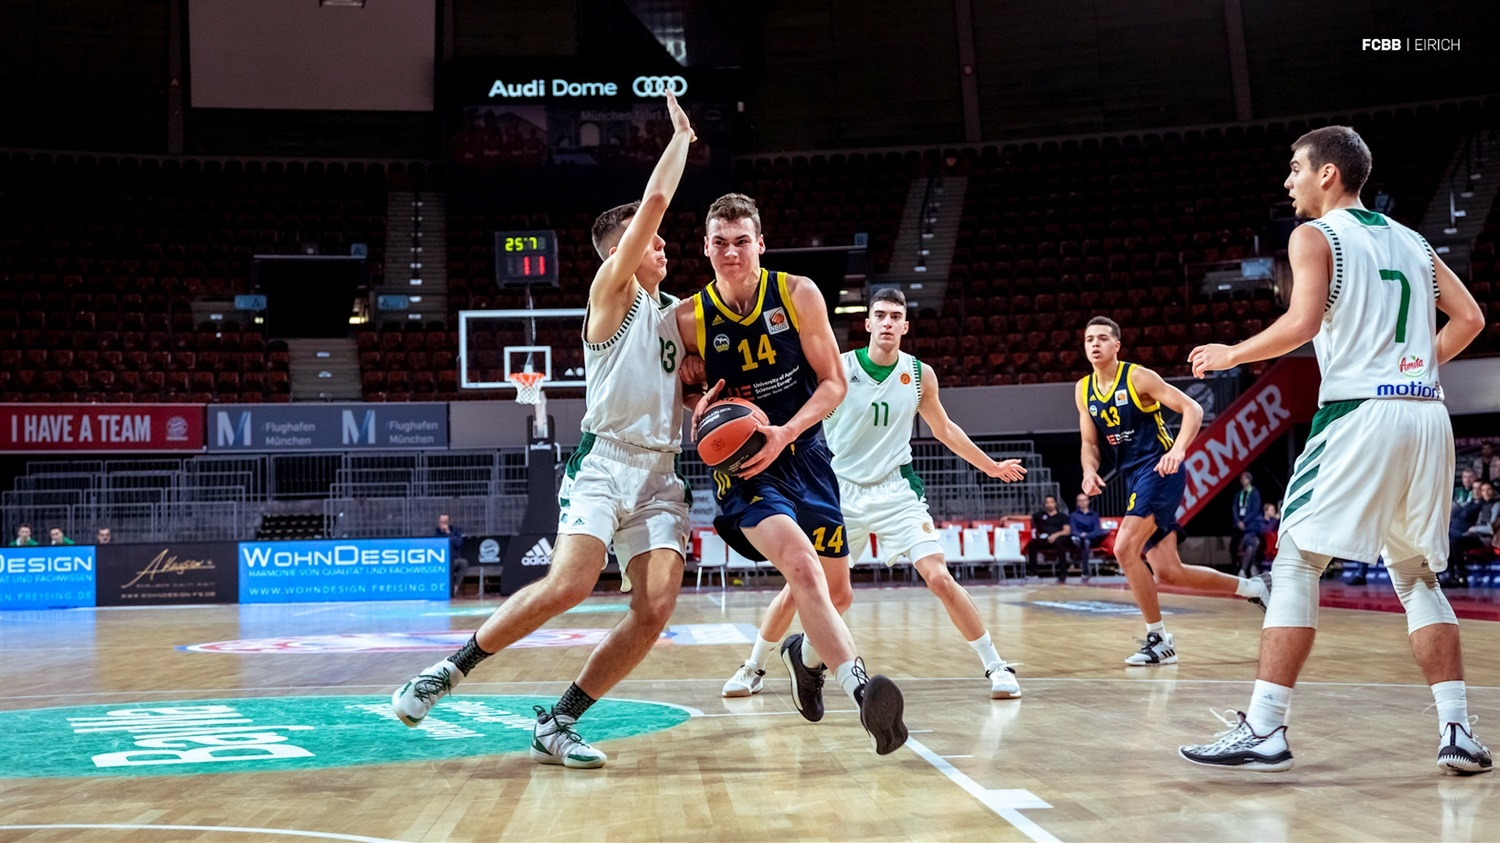 Ben Lingk - U18 ALBA Berlin - ANGT Munich 2019 (photo FCBB - Eirich) JT18